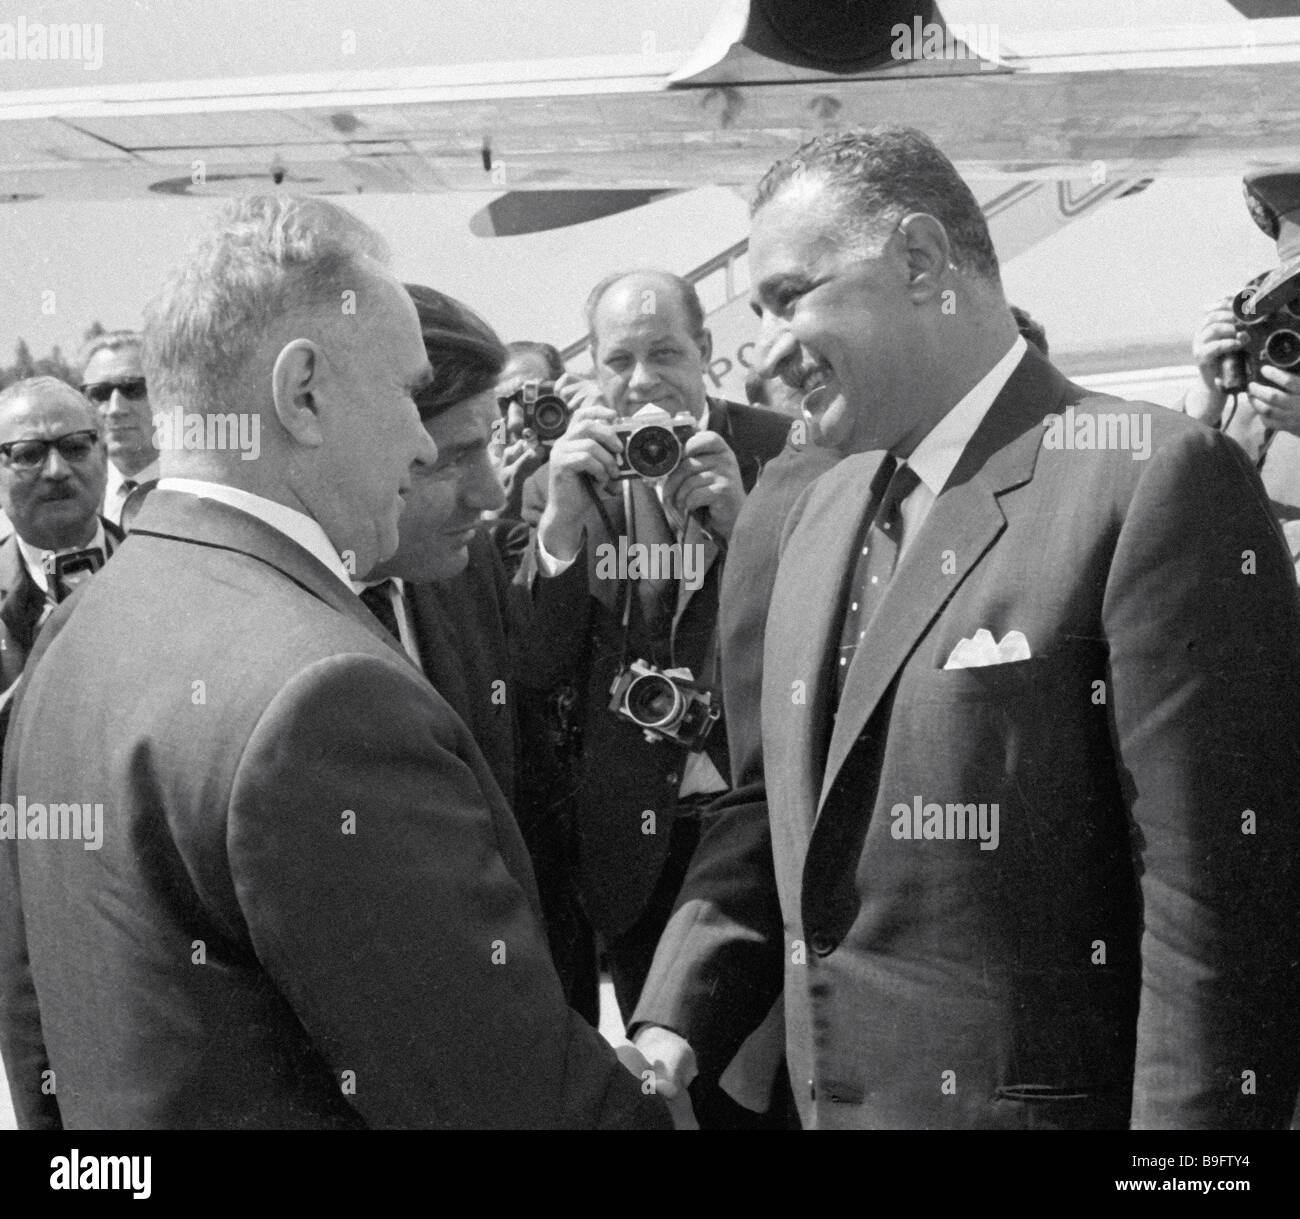 Chairman of the U S S R Council of Ministers Alexei Kosygin left meeting with Egyptian leader Gamal Abdel Nasser - Stock Image